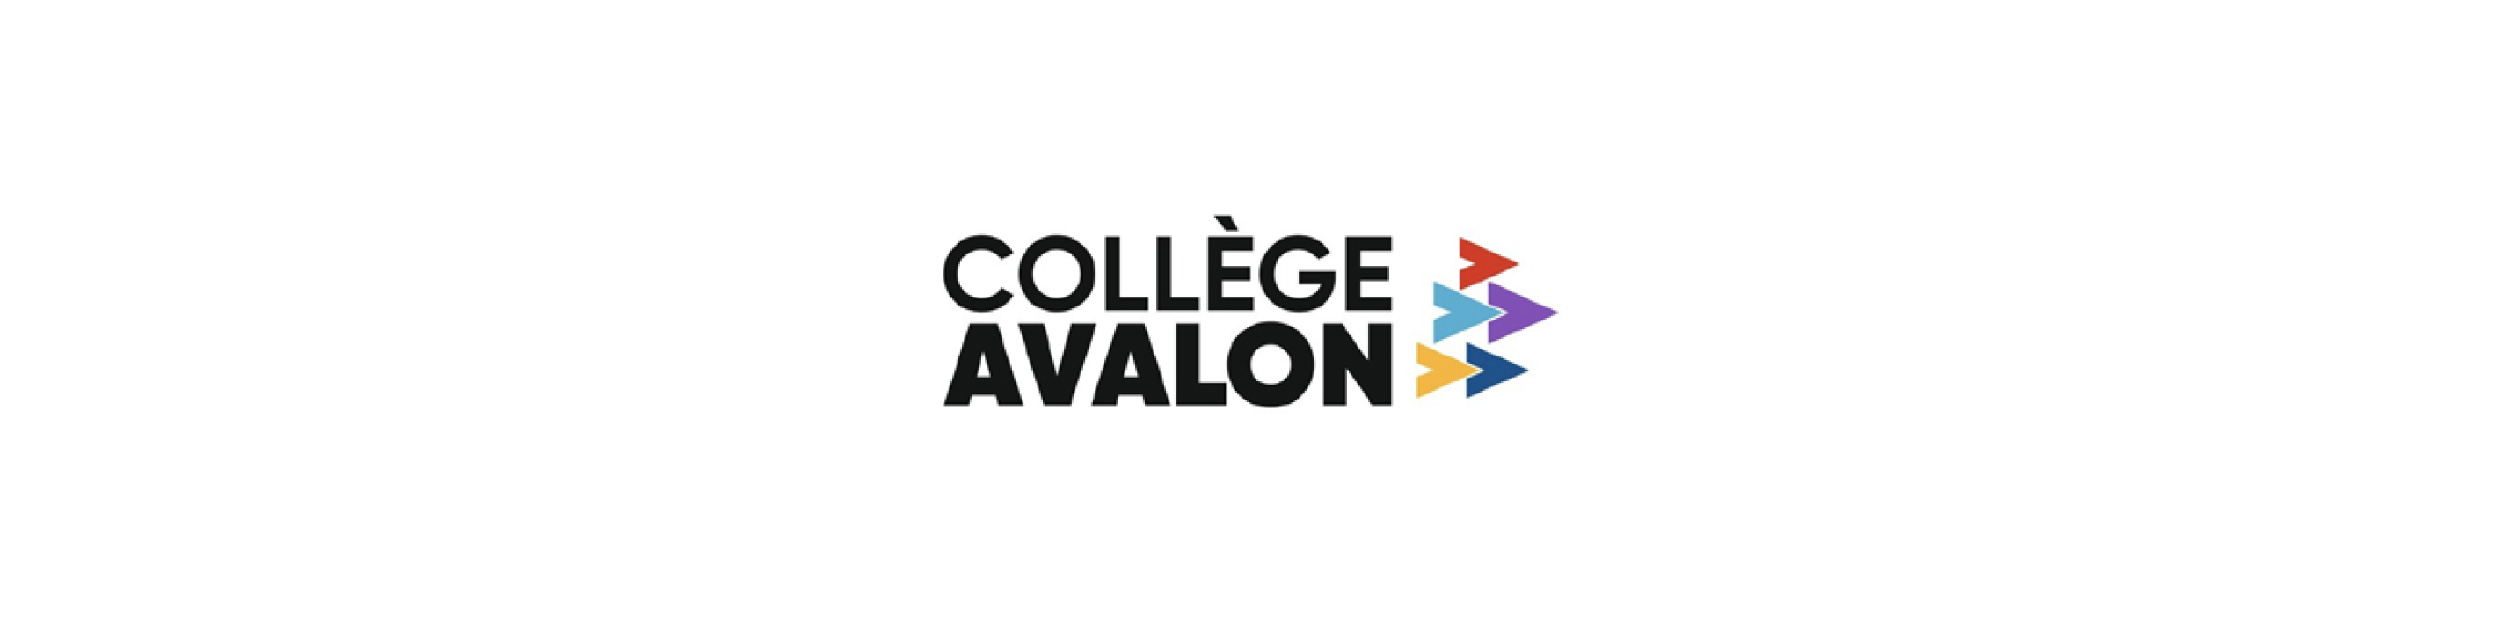 avalon-college-immiland